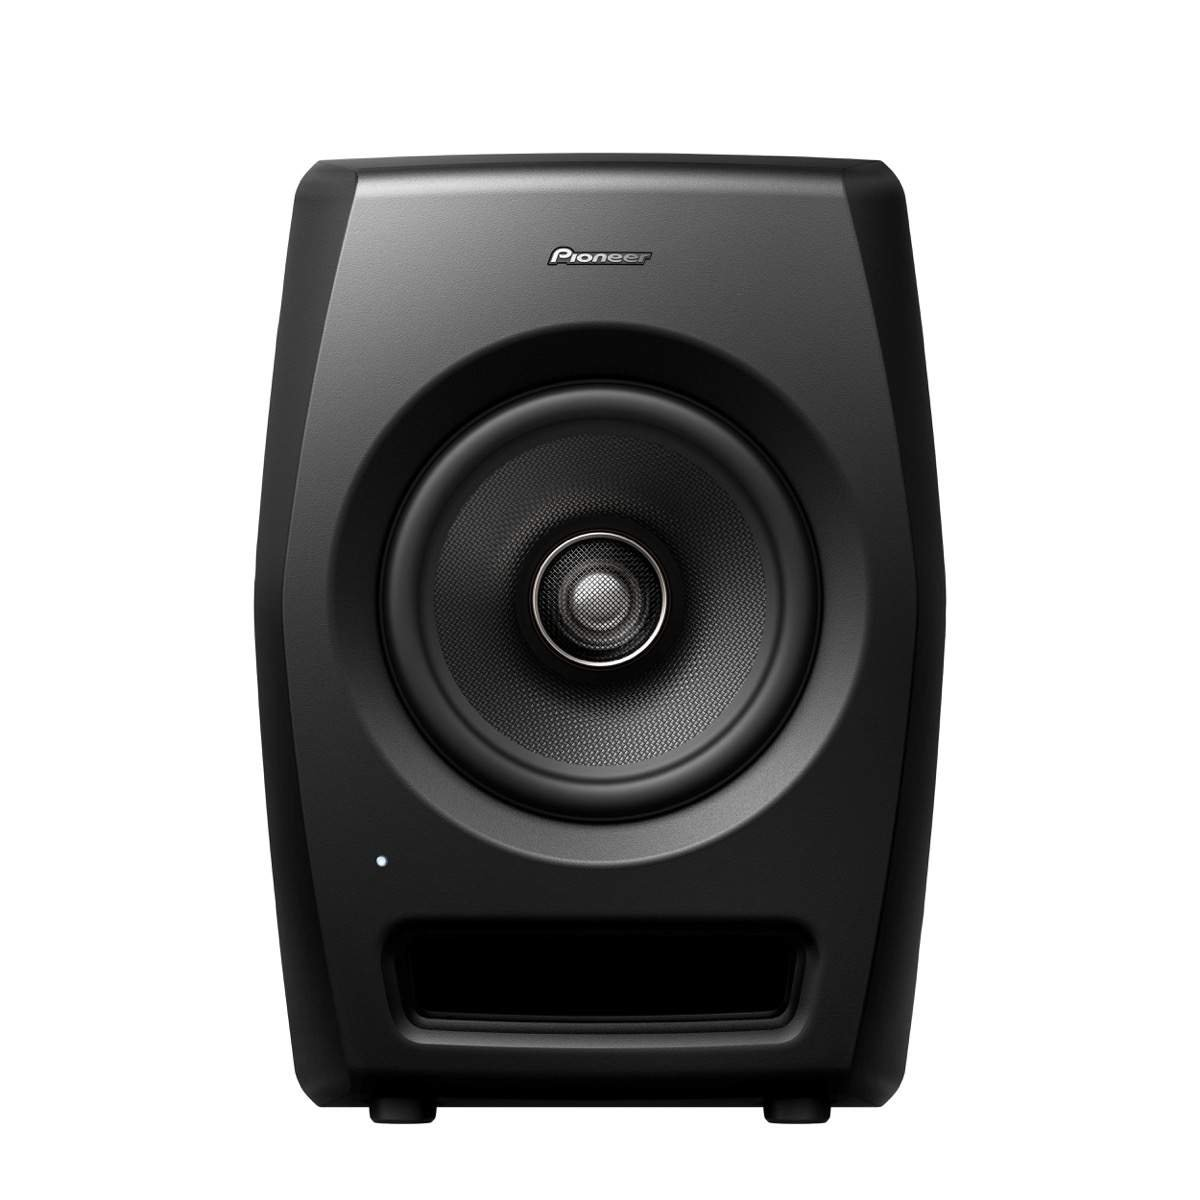 front facing Pioneer RM-07